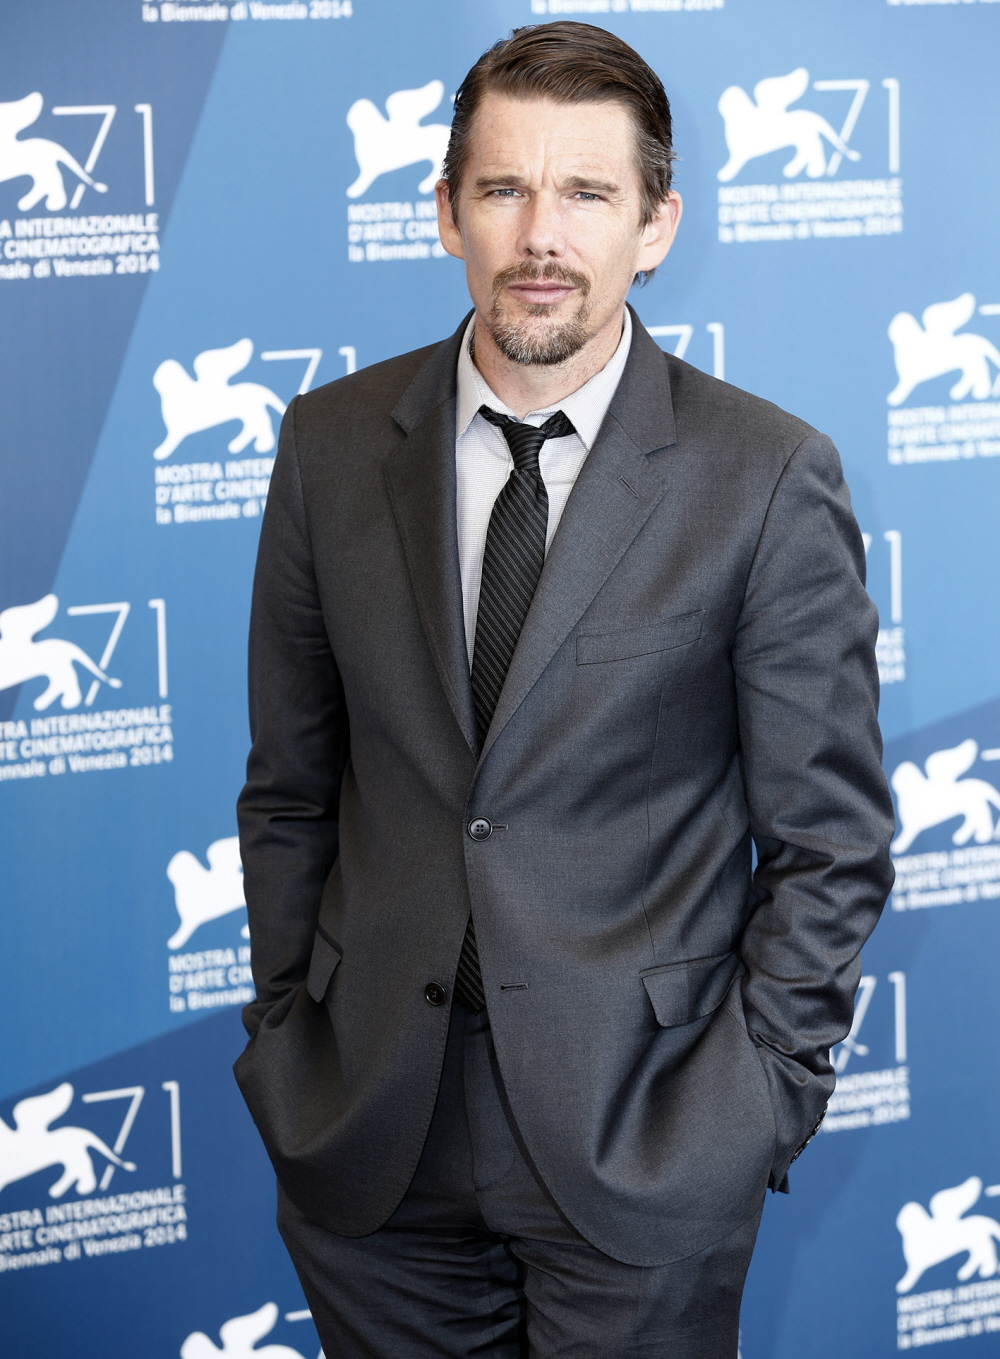 Joaquin Phoenix out, Ethan Hawke in for Doctor Strange: good choice?